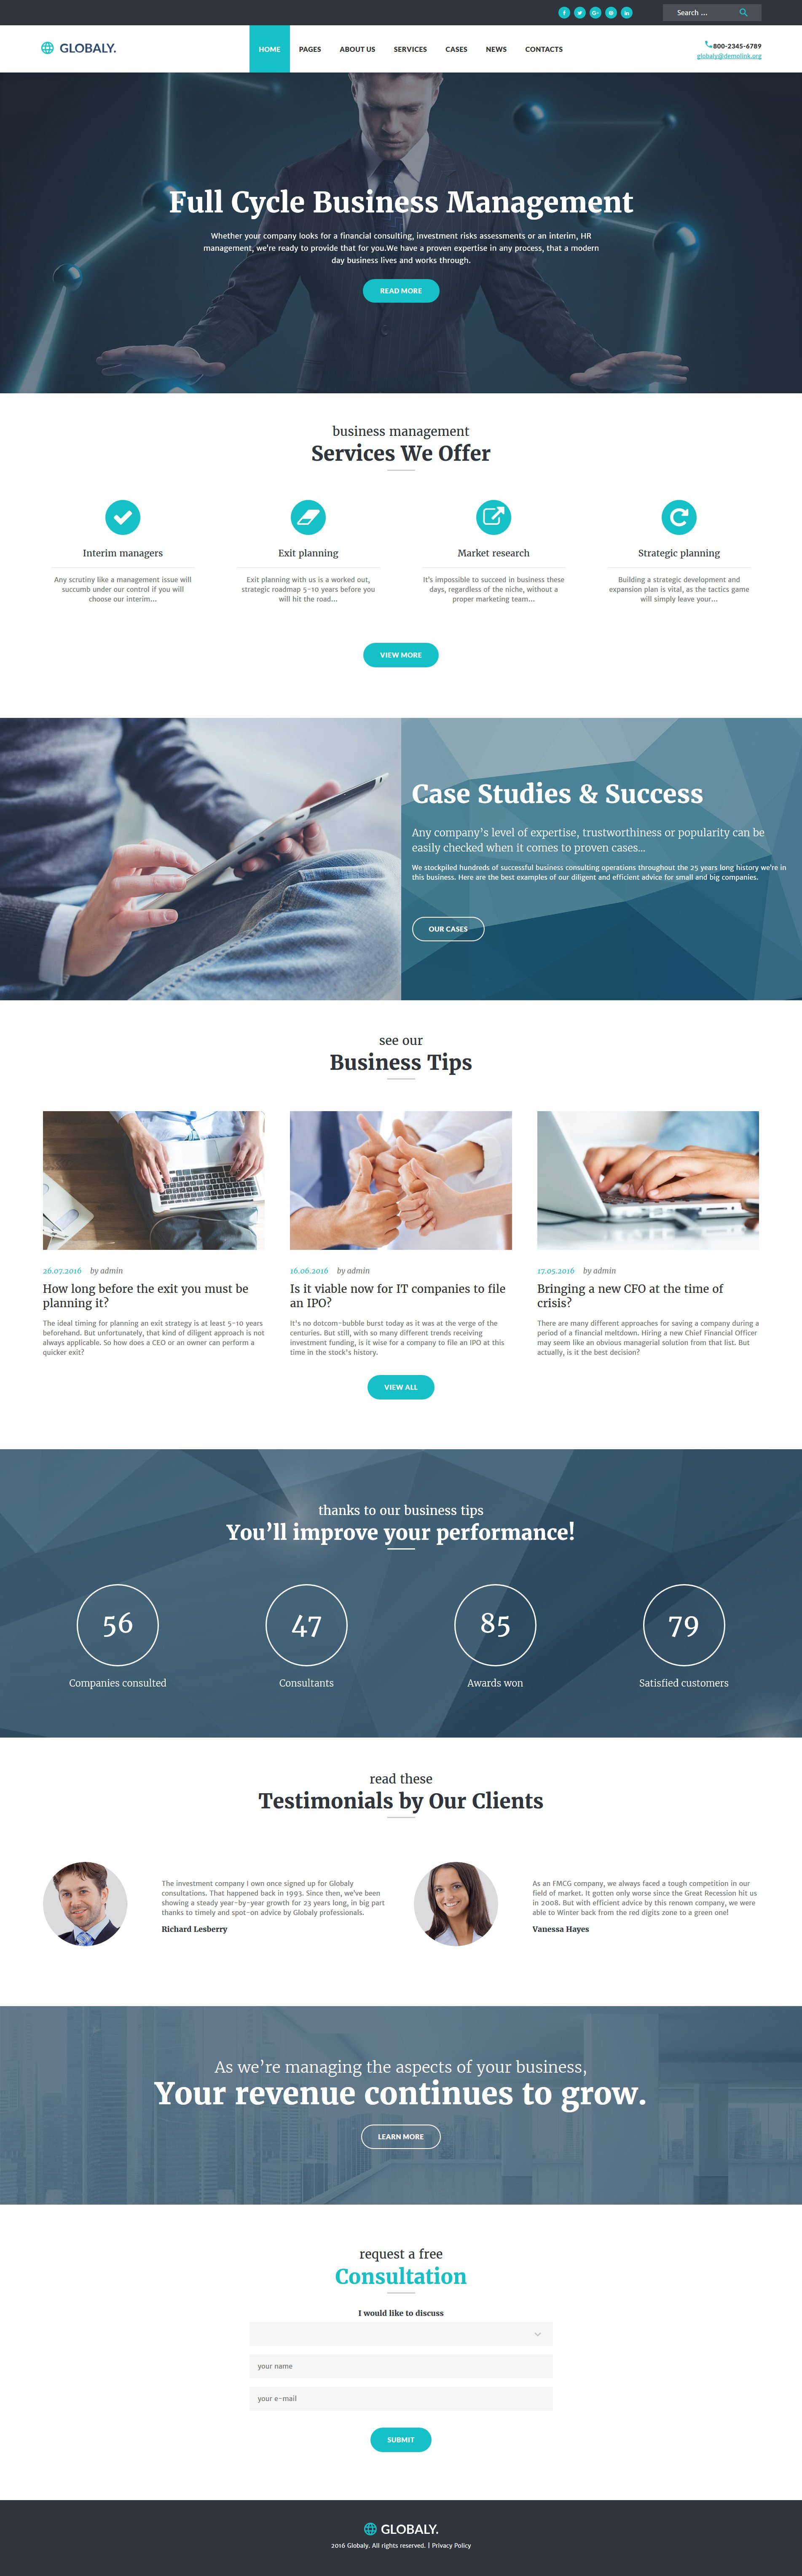 Globaly - Full Cycle Business Management & Consulting Responsive WordPress Theme - screenshot